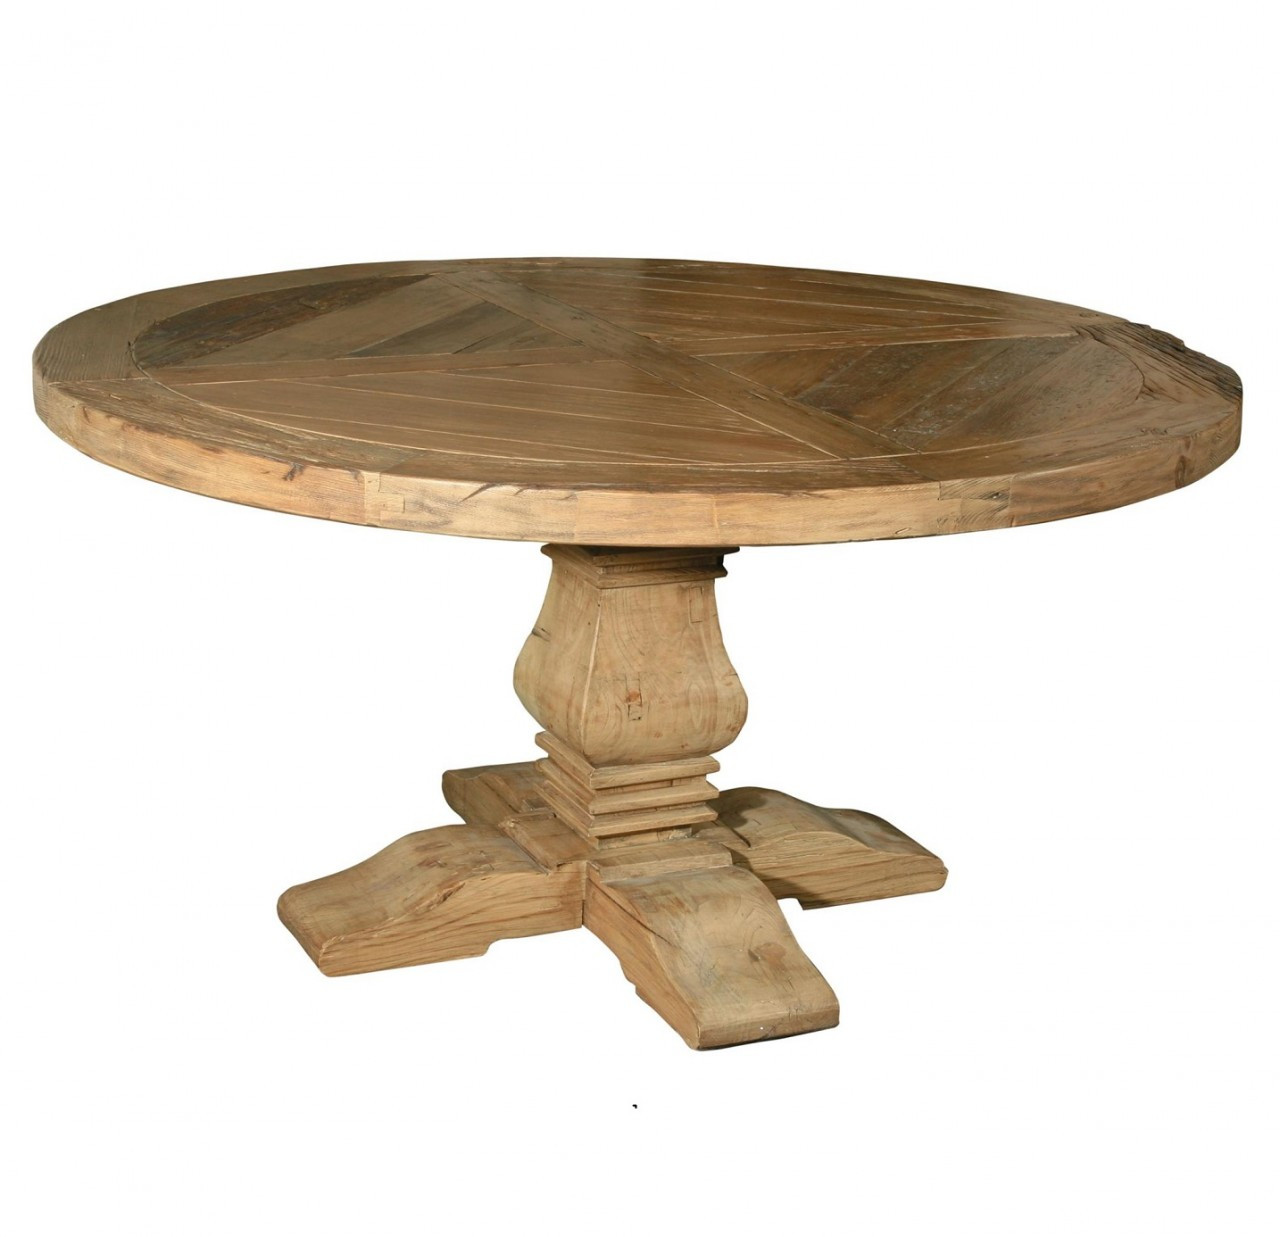 Round Pedestal Dining Table 60 Inch best collections of 60 inch round pedestal dining table - all can